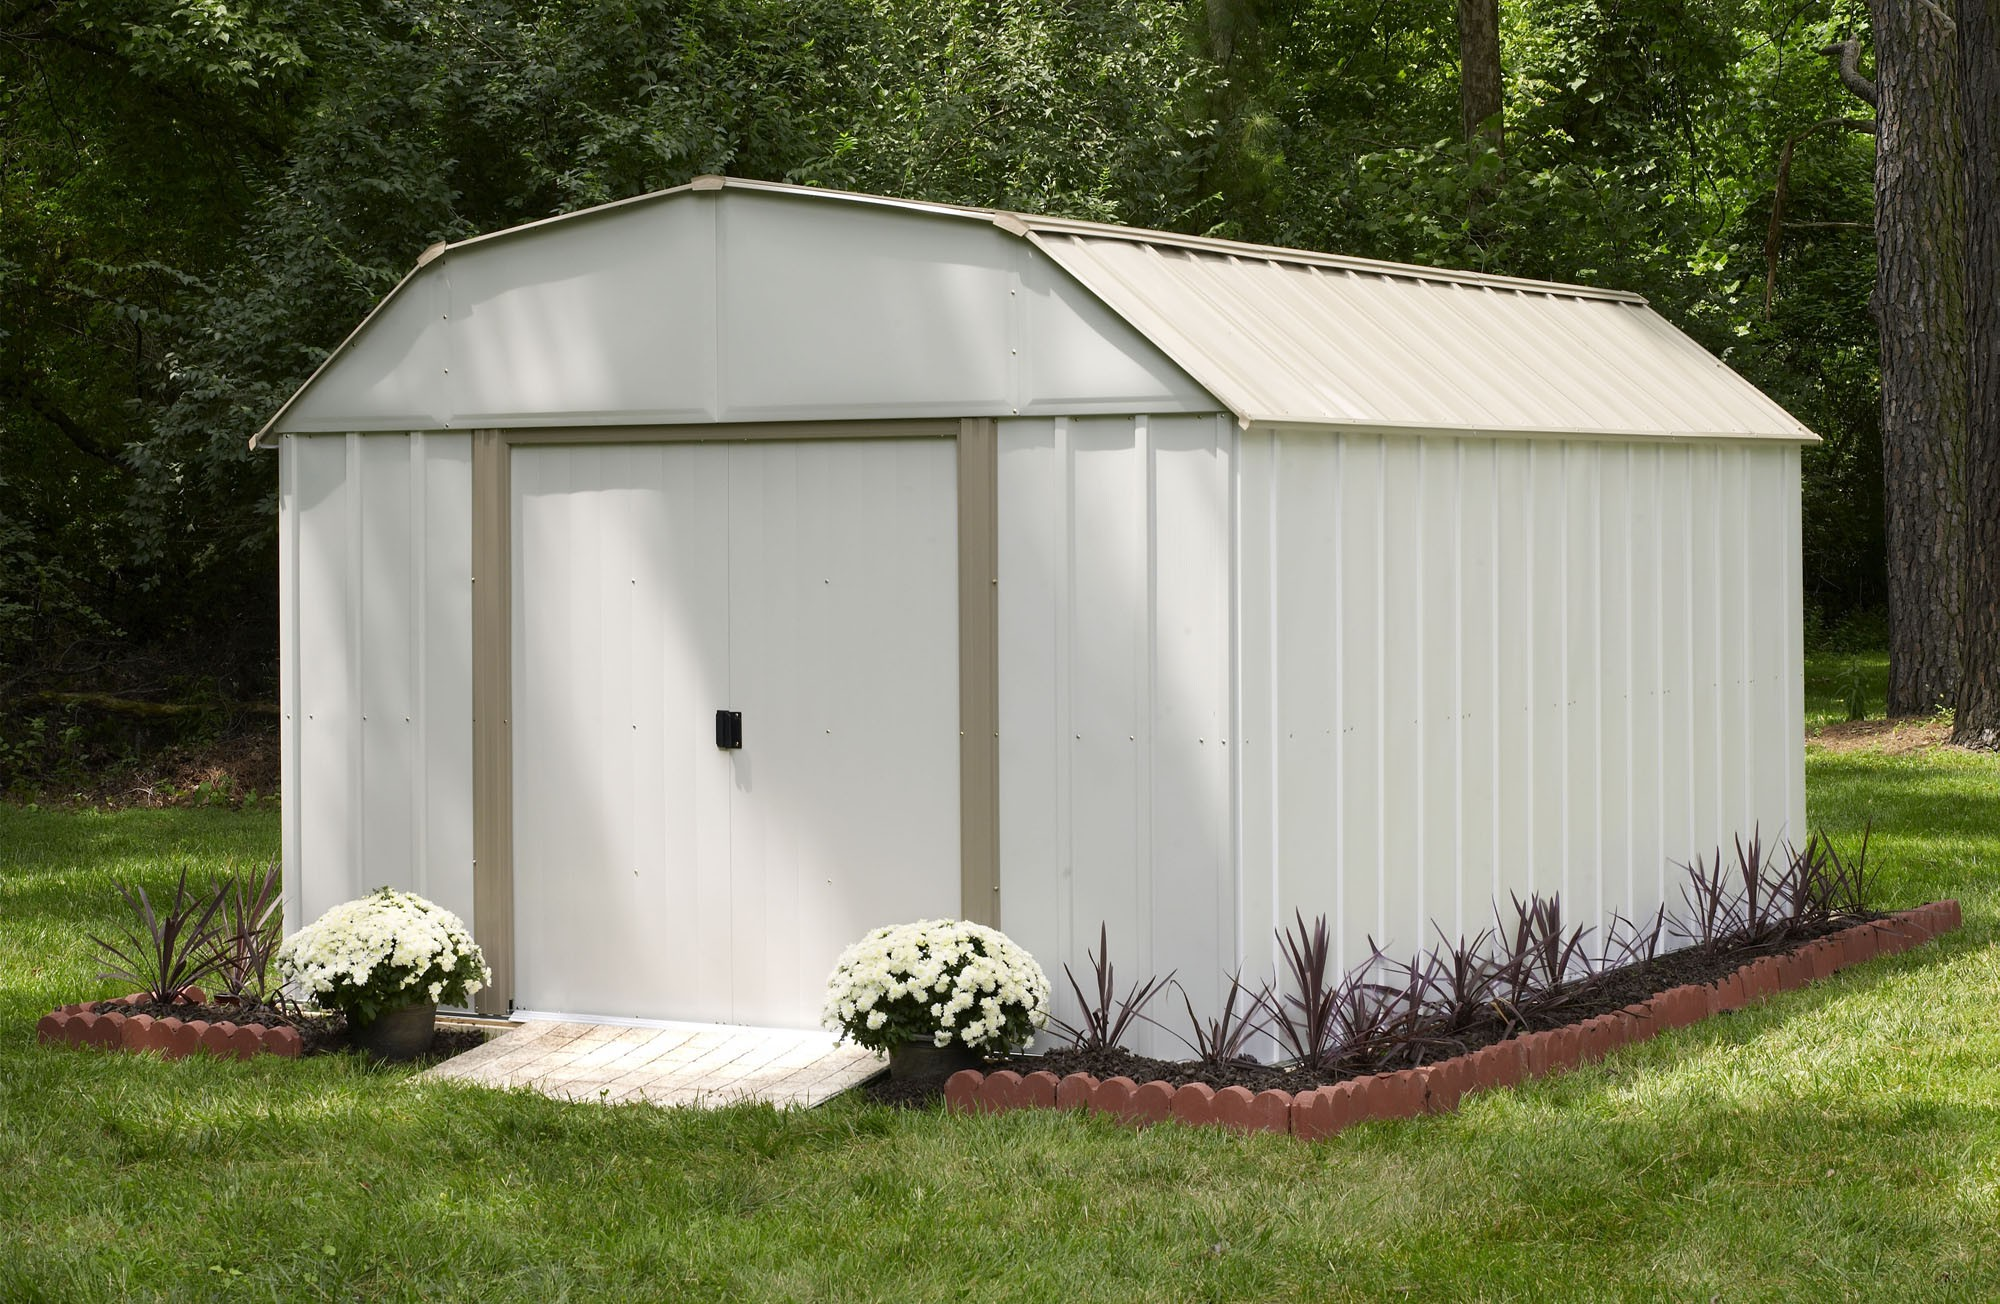 Steel Storage Sheds Lexington 10 Ft X 14 Ft Steel Storage Shed Electro Galvanized